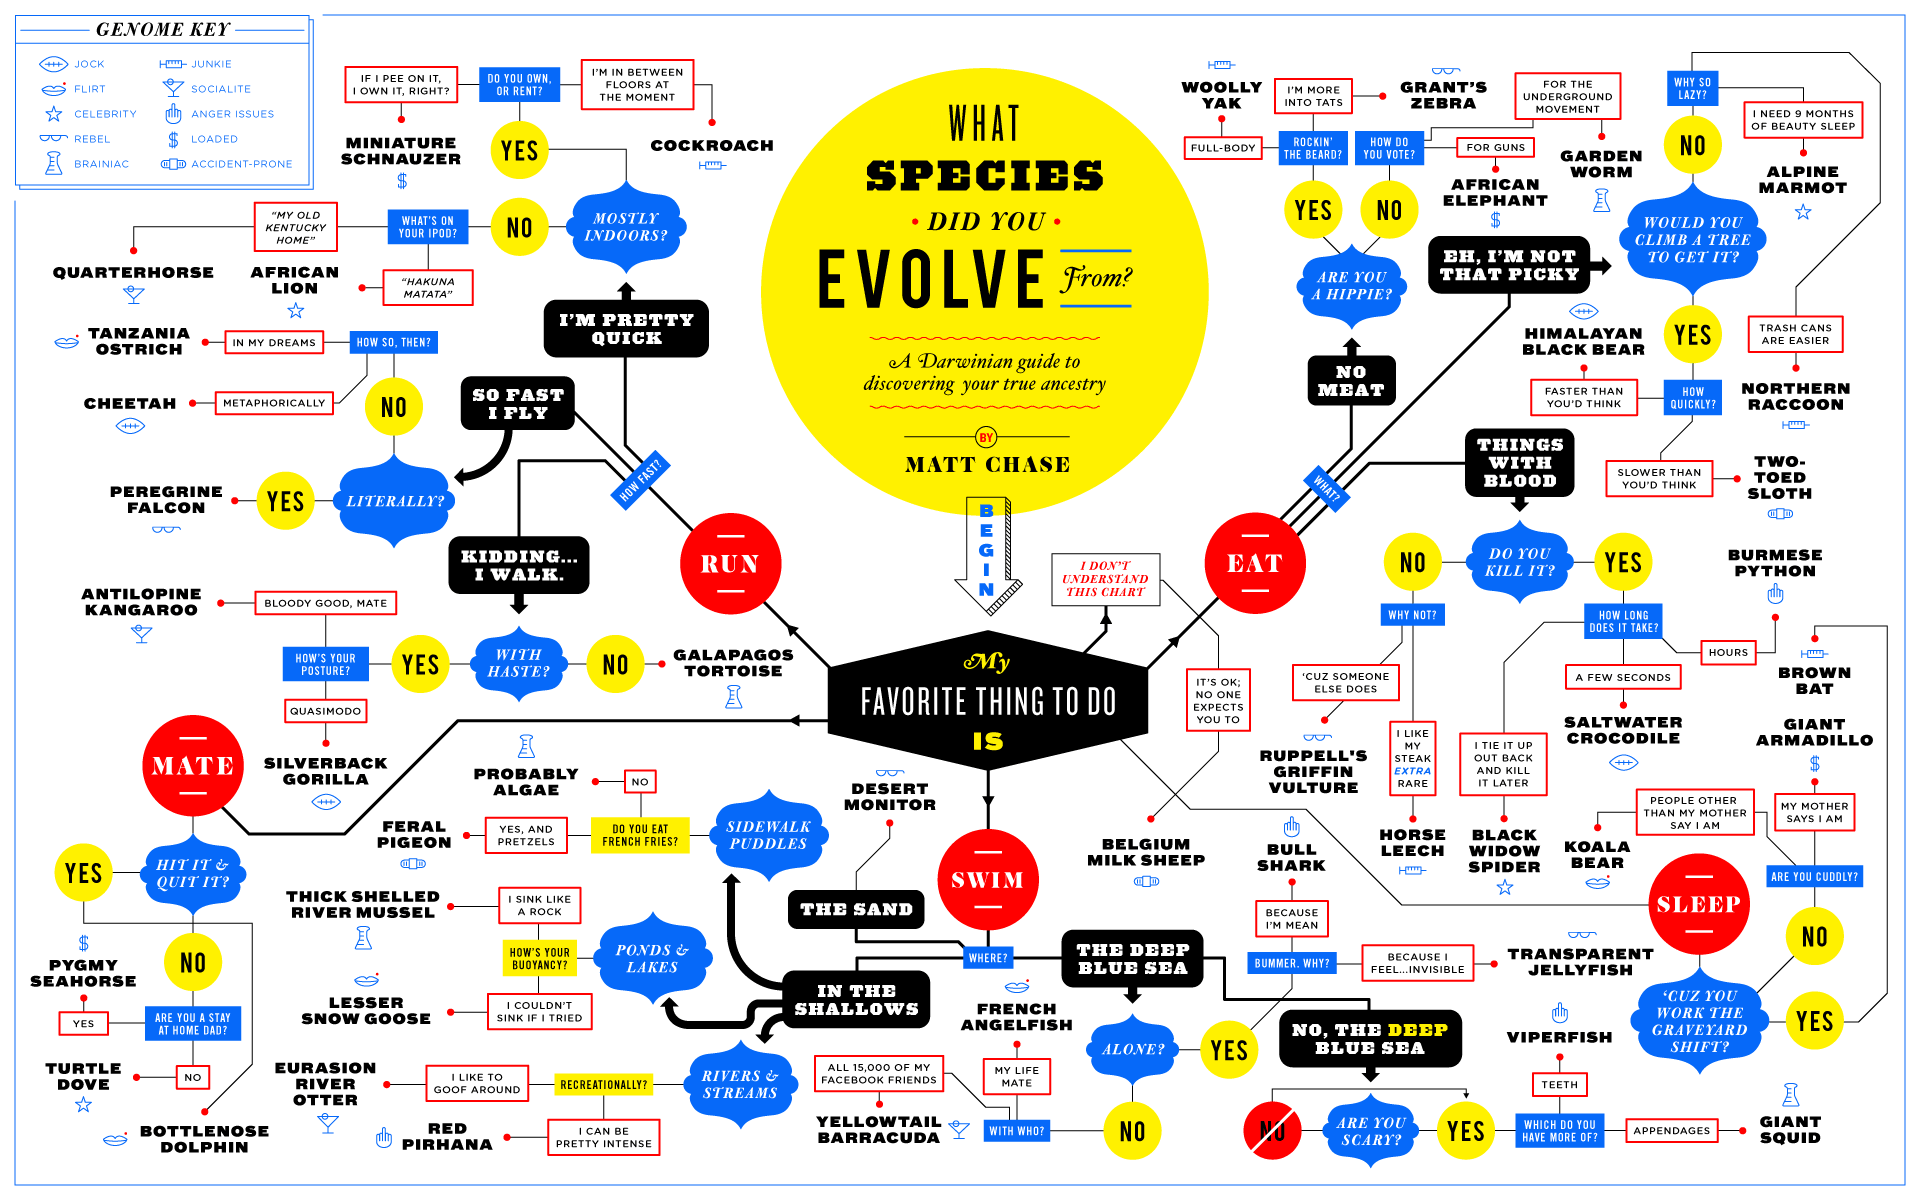 What species did you evolve from?